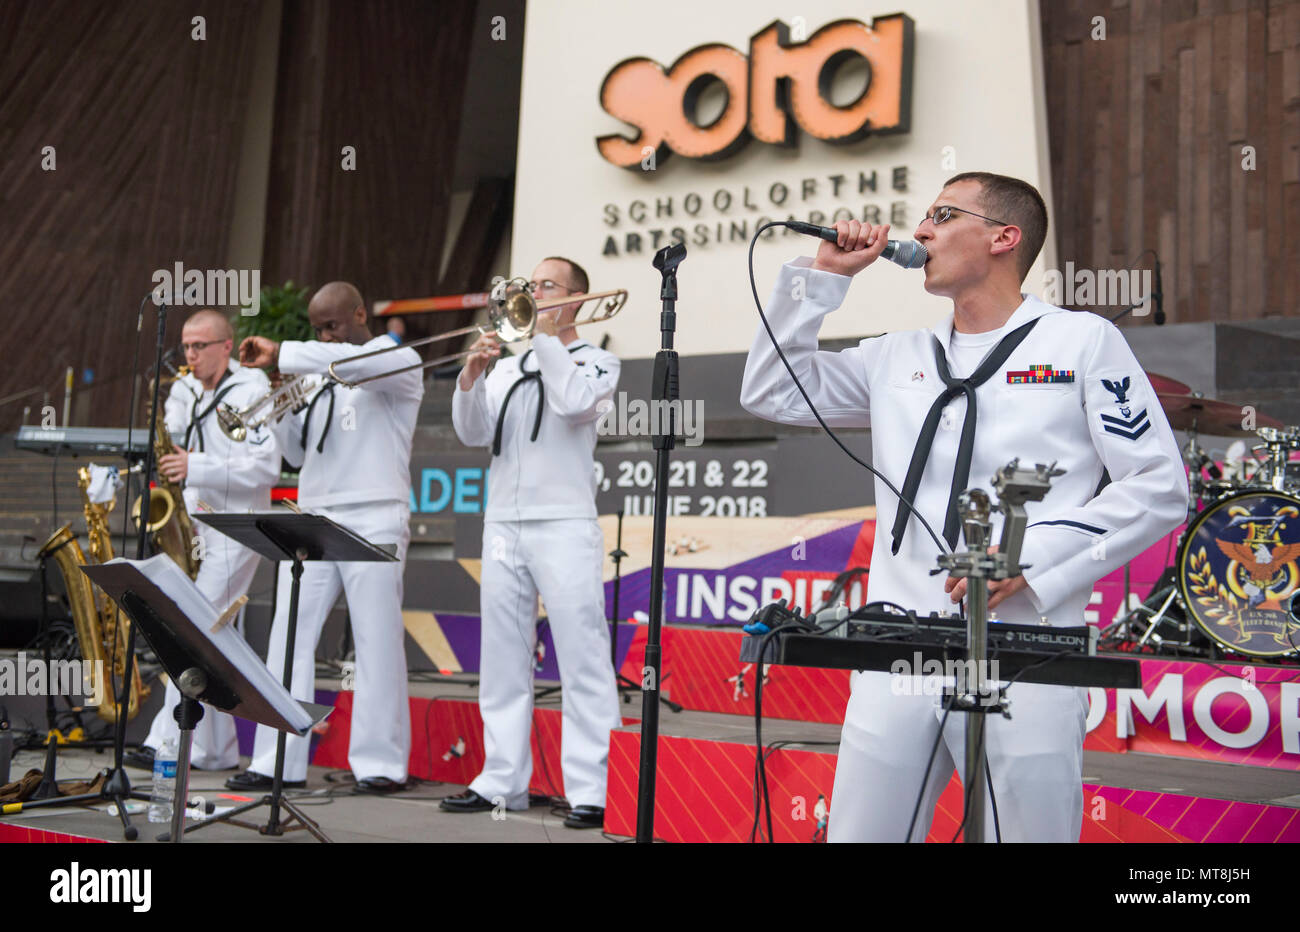 180514-N-OU129-249 SINGAPORE (May 14, 2018) U.S Navy 7th fleet Band Far East Edition performs at the Singapore School Of The Arts. The Far East Edition is made up of 8 professional Navy Musicians who perform a wide range music from the 1960s to todays most popular hits. (U.S. Navy photo by Mass Communication Specialist 2nd Class Joshua Fulton/RELEASED) Stock Photo